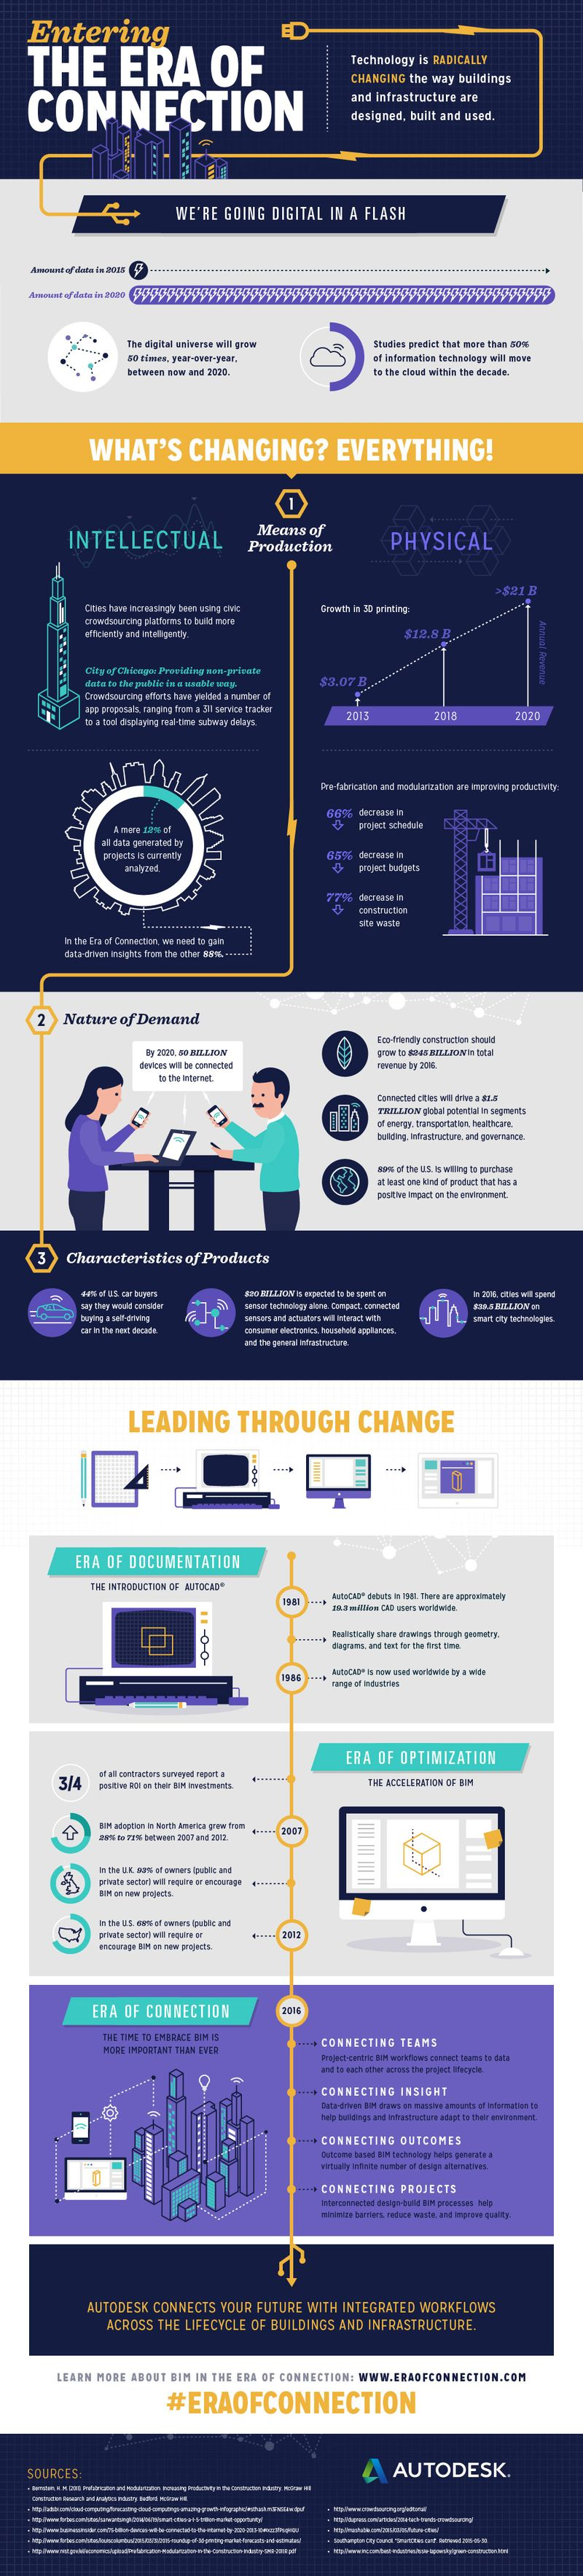 autodesk era of connection infographic